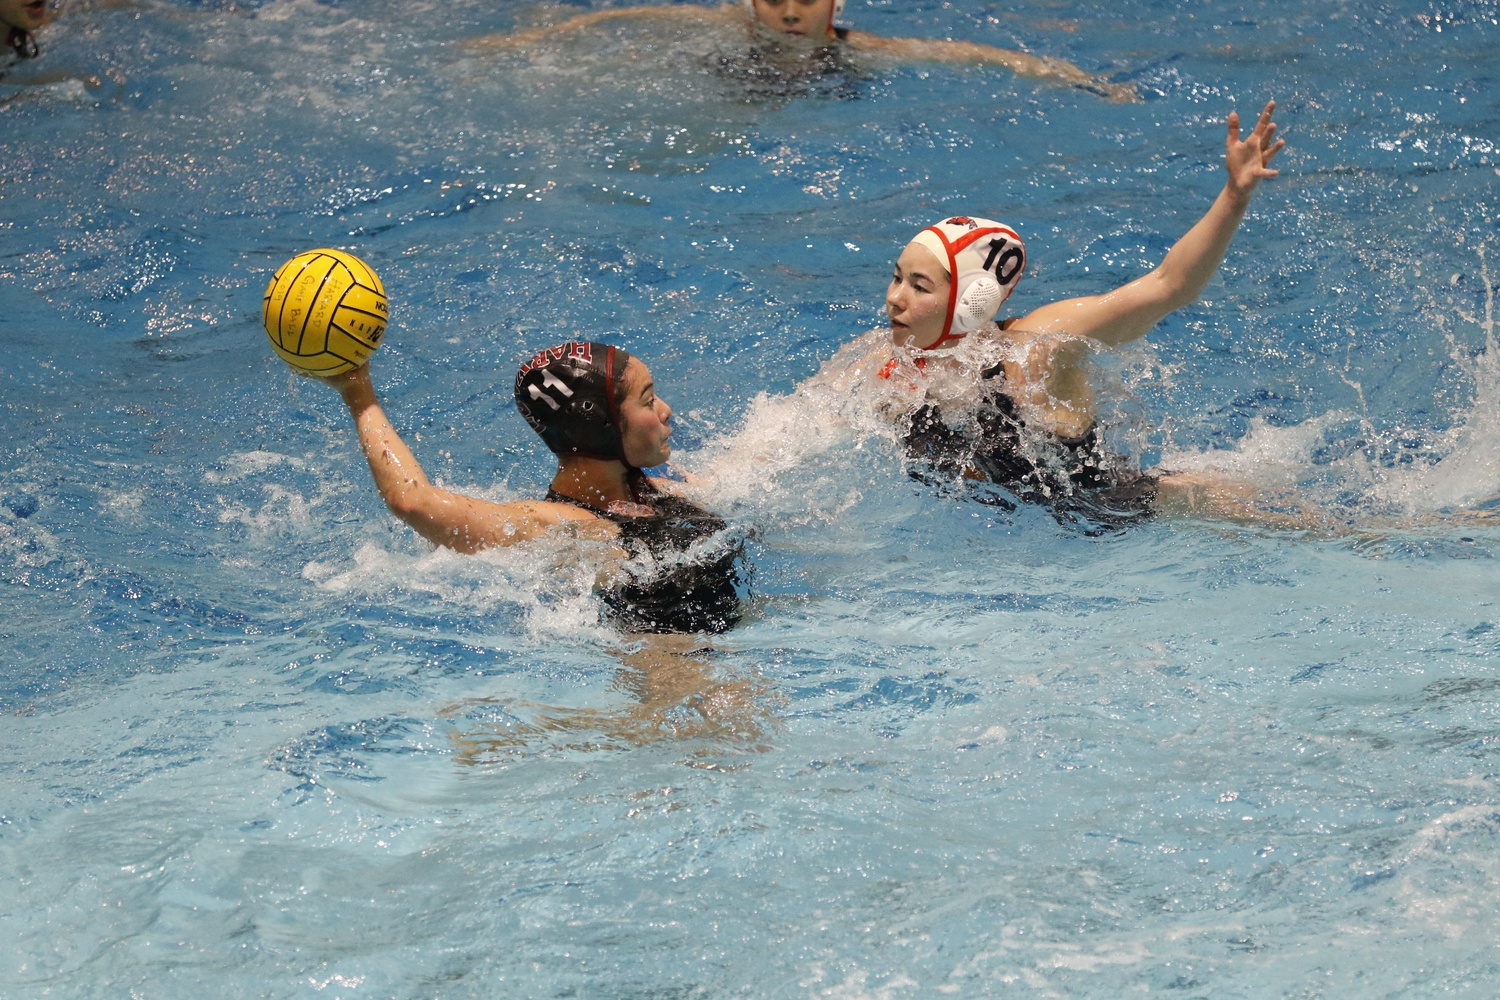 The women's water polo team will return to action for the CWPA playoffs after a two-week hiatus.